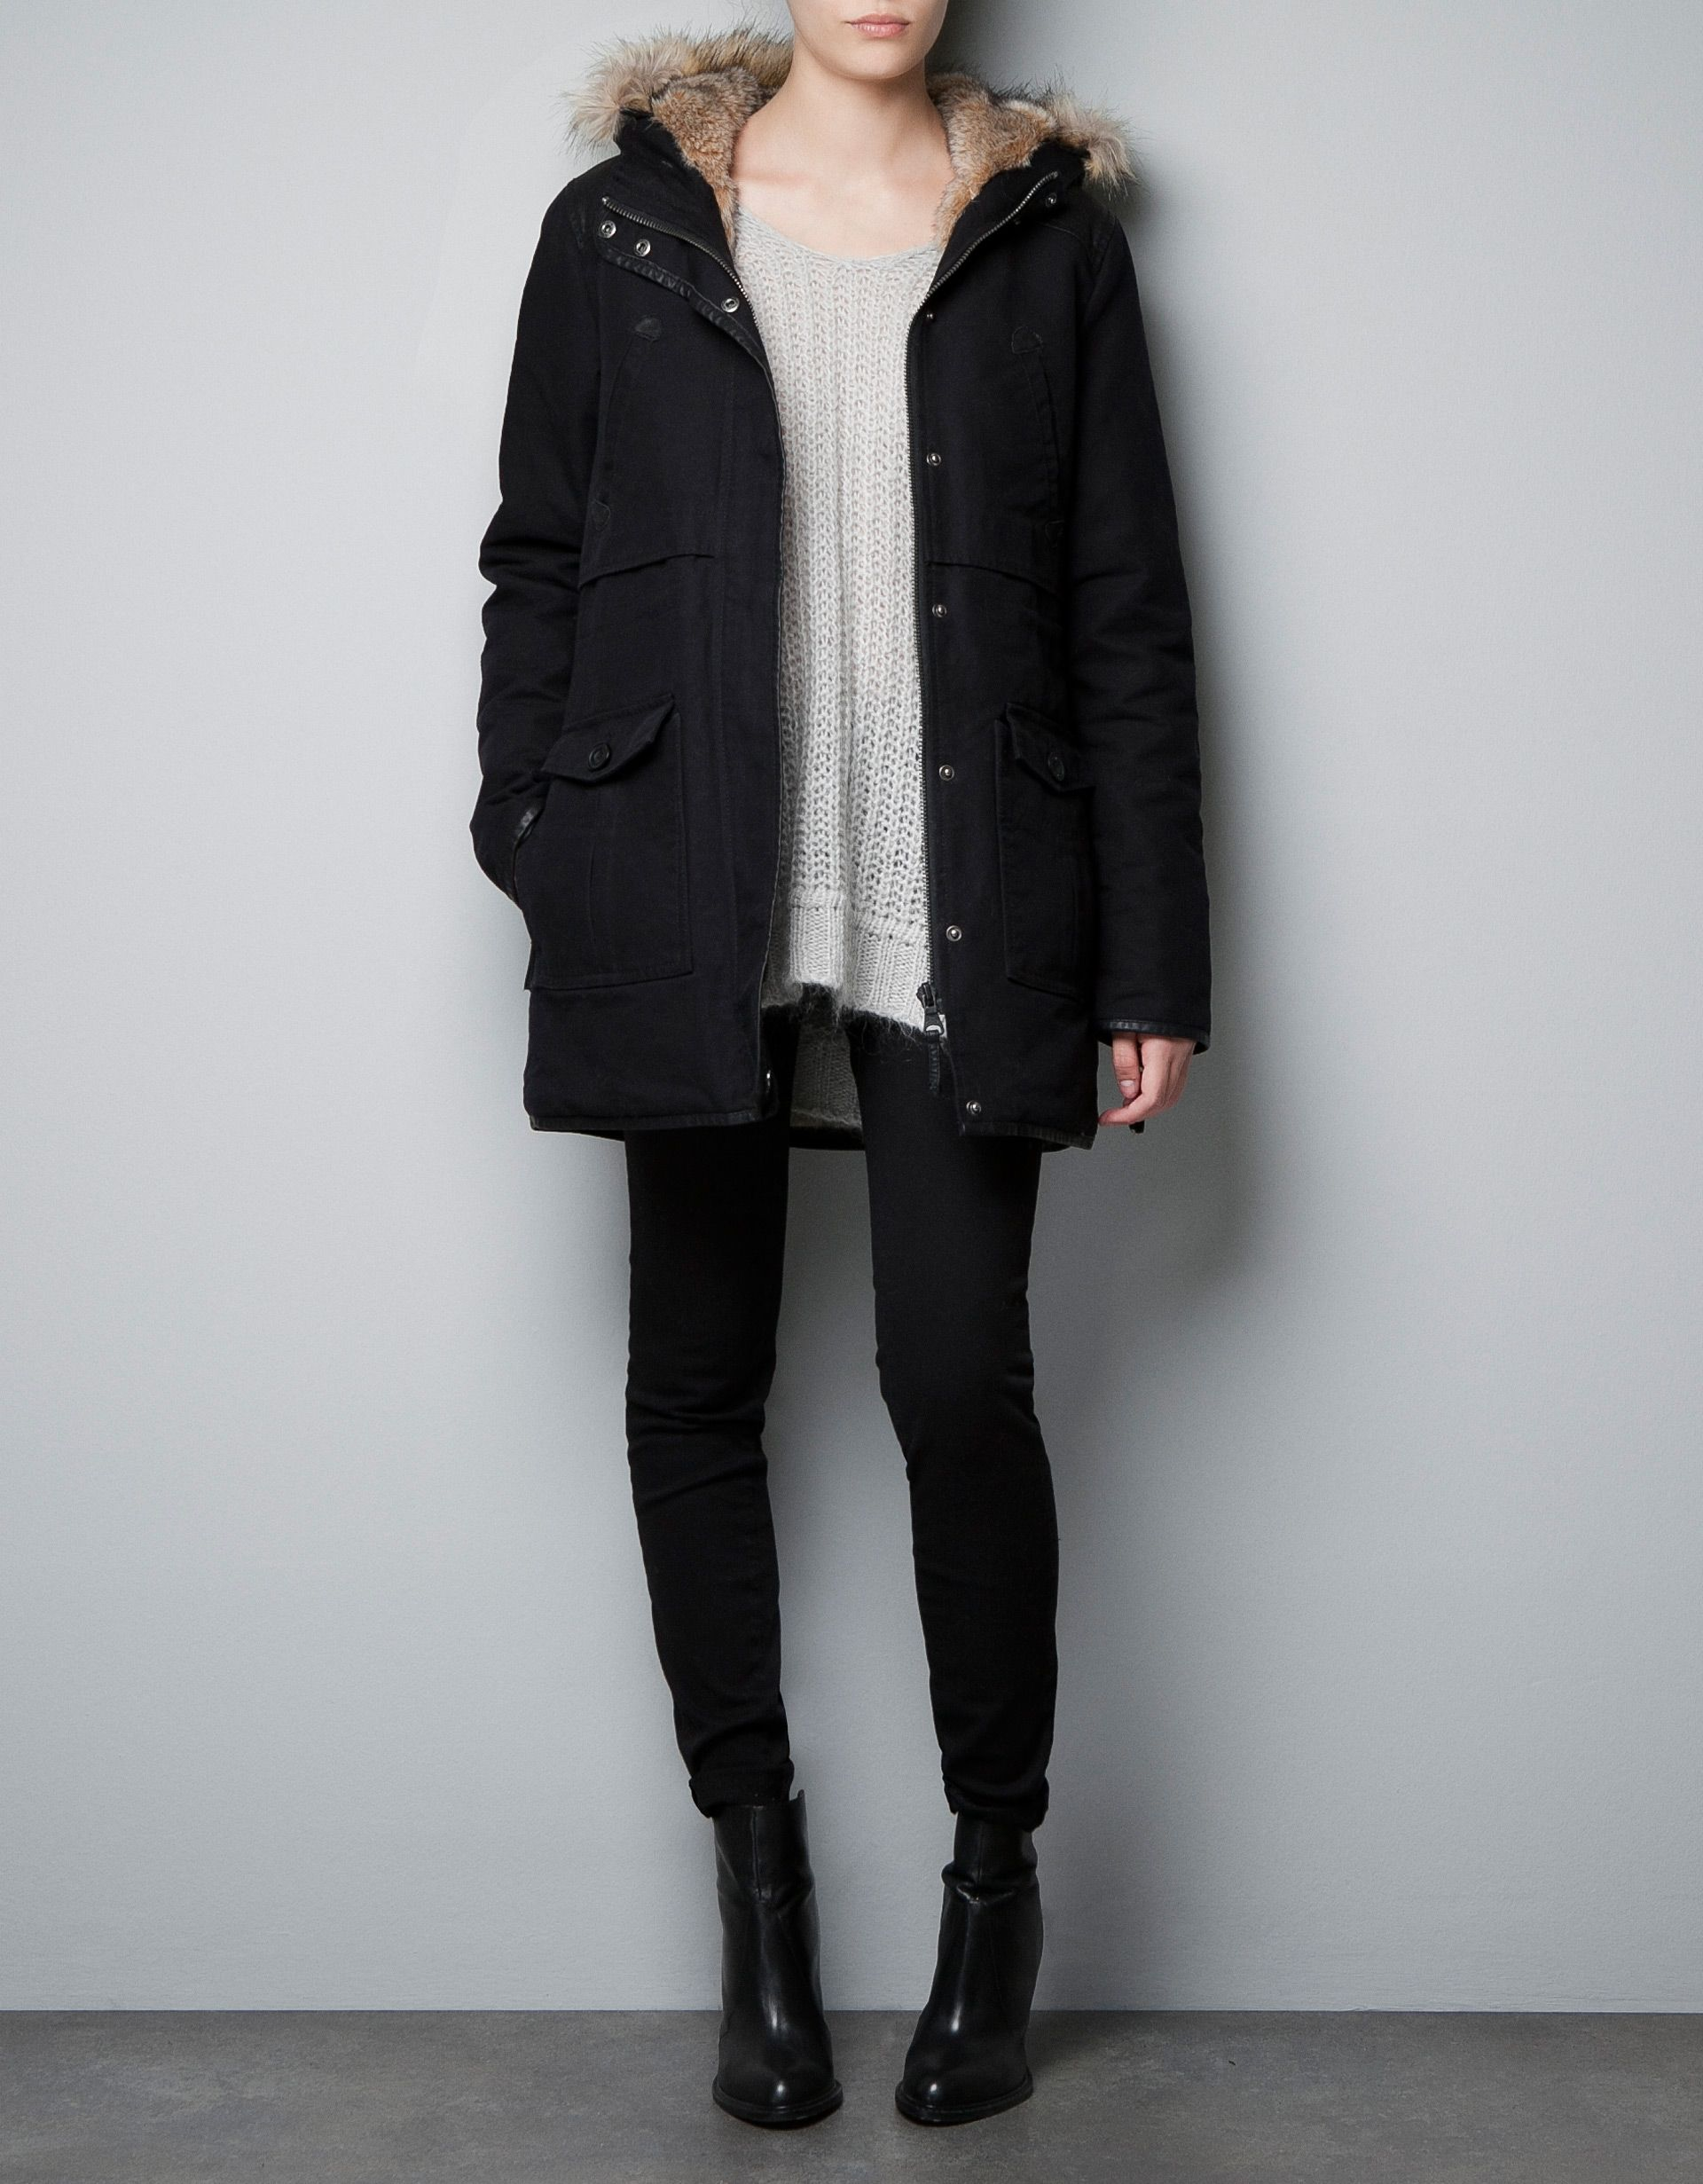 Black parka | Clothes | Pinterest | Black parka, Black and Clothes